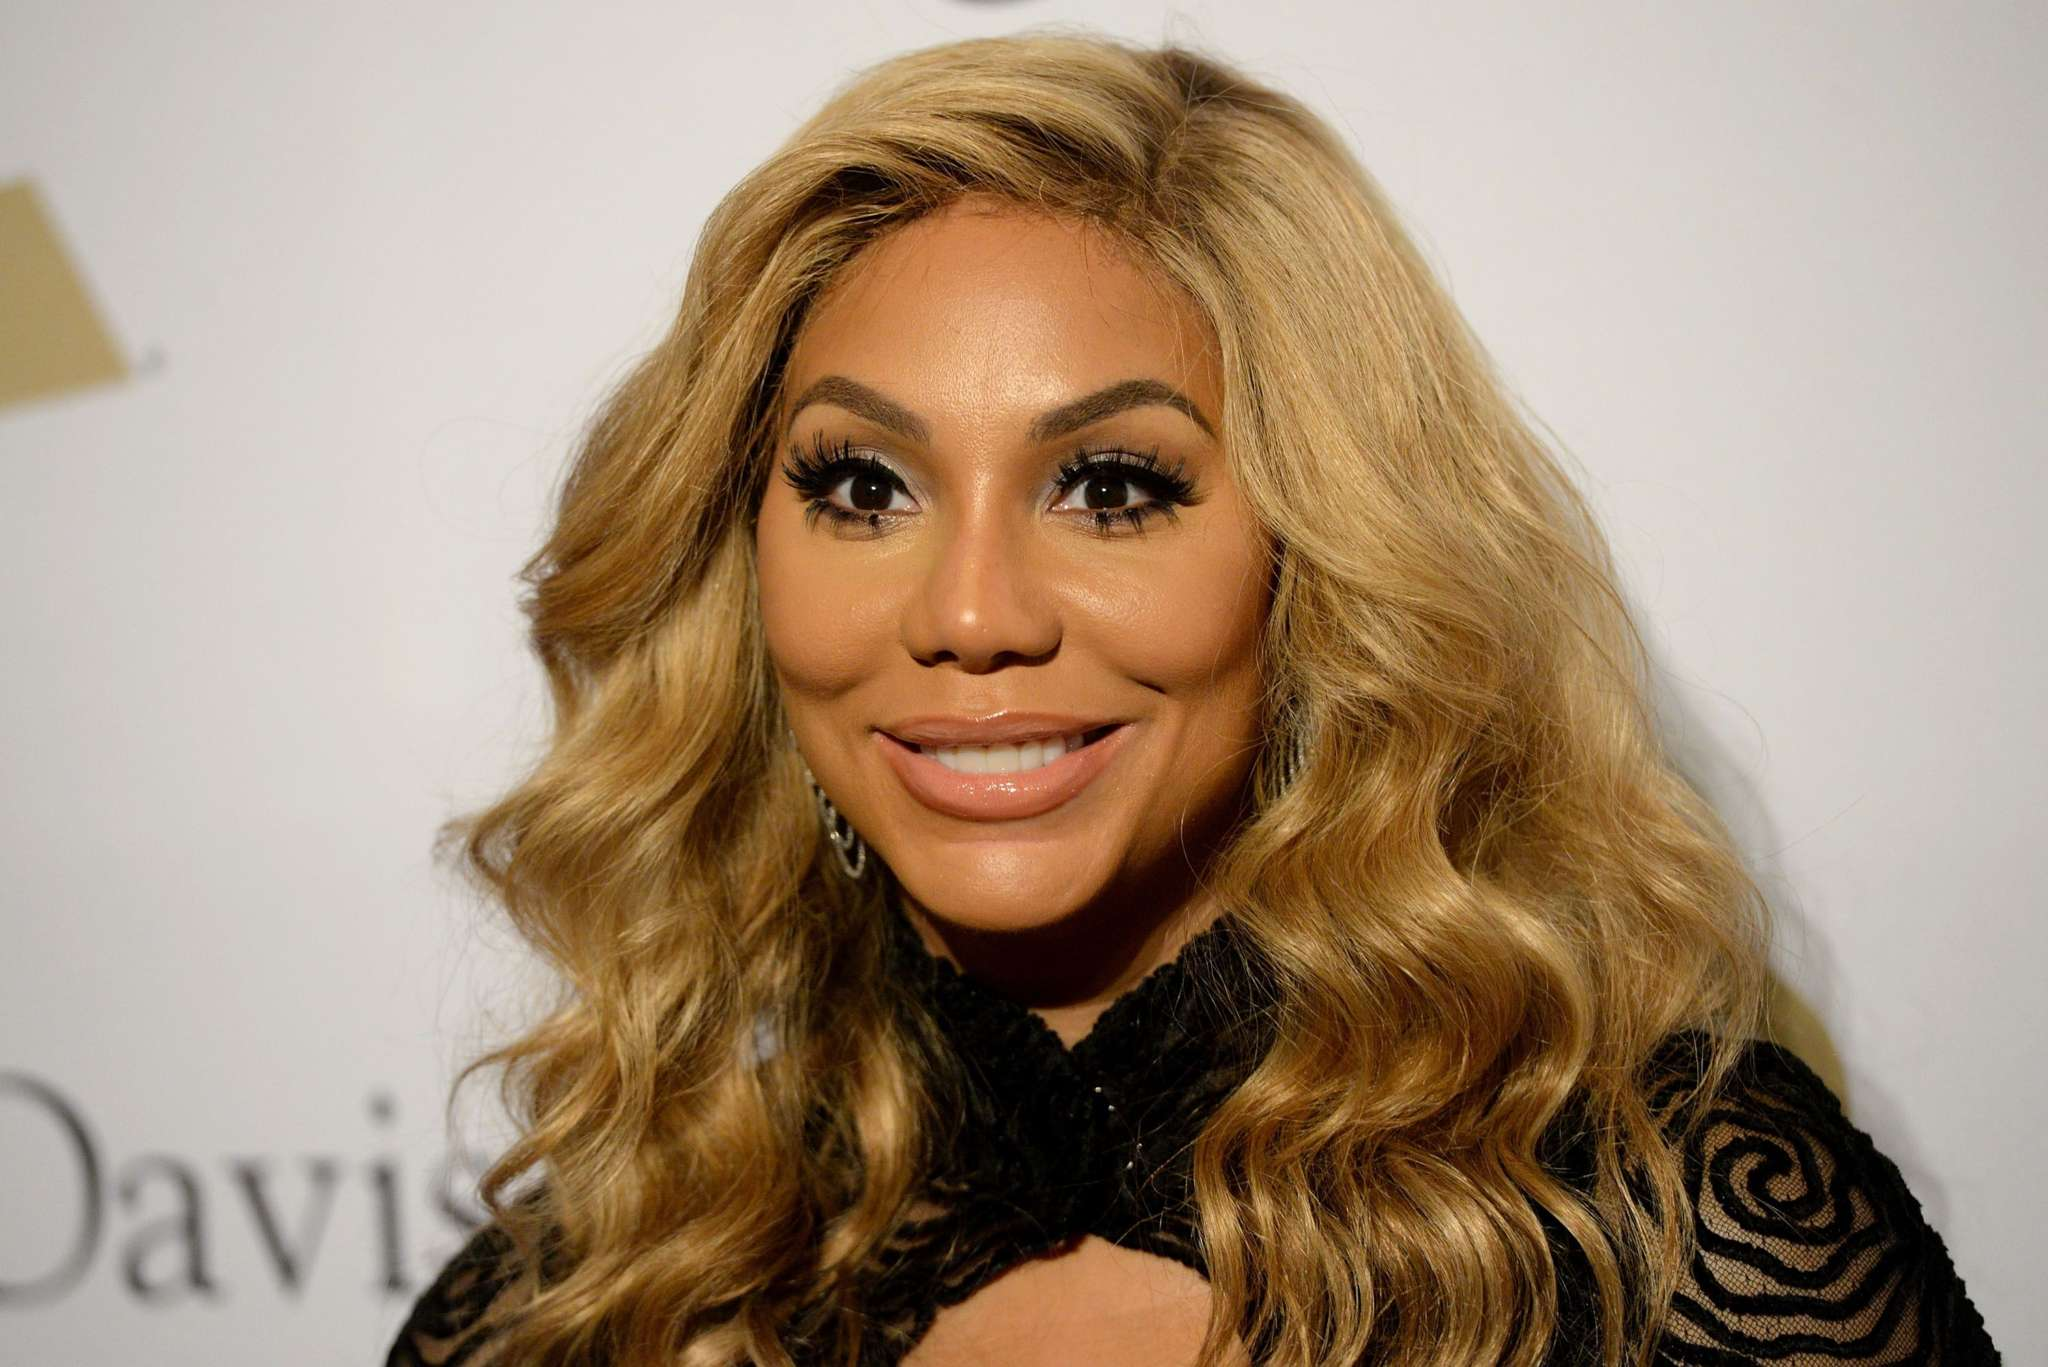 """tamar-braxton-tries-to-make-a-fashion-video-but-all-her-boo-david-adefeso-wants-is-to-see-her-on-a-plate"""